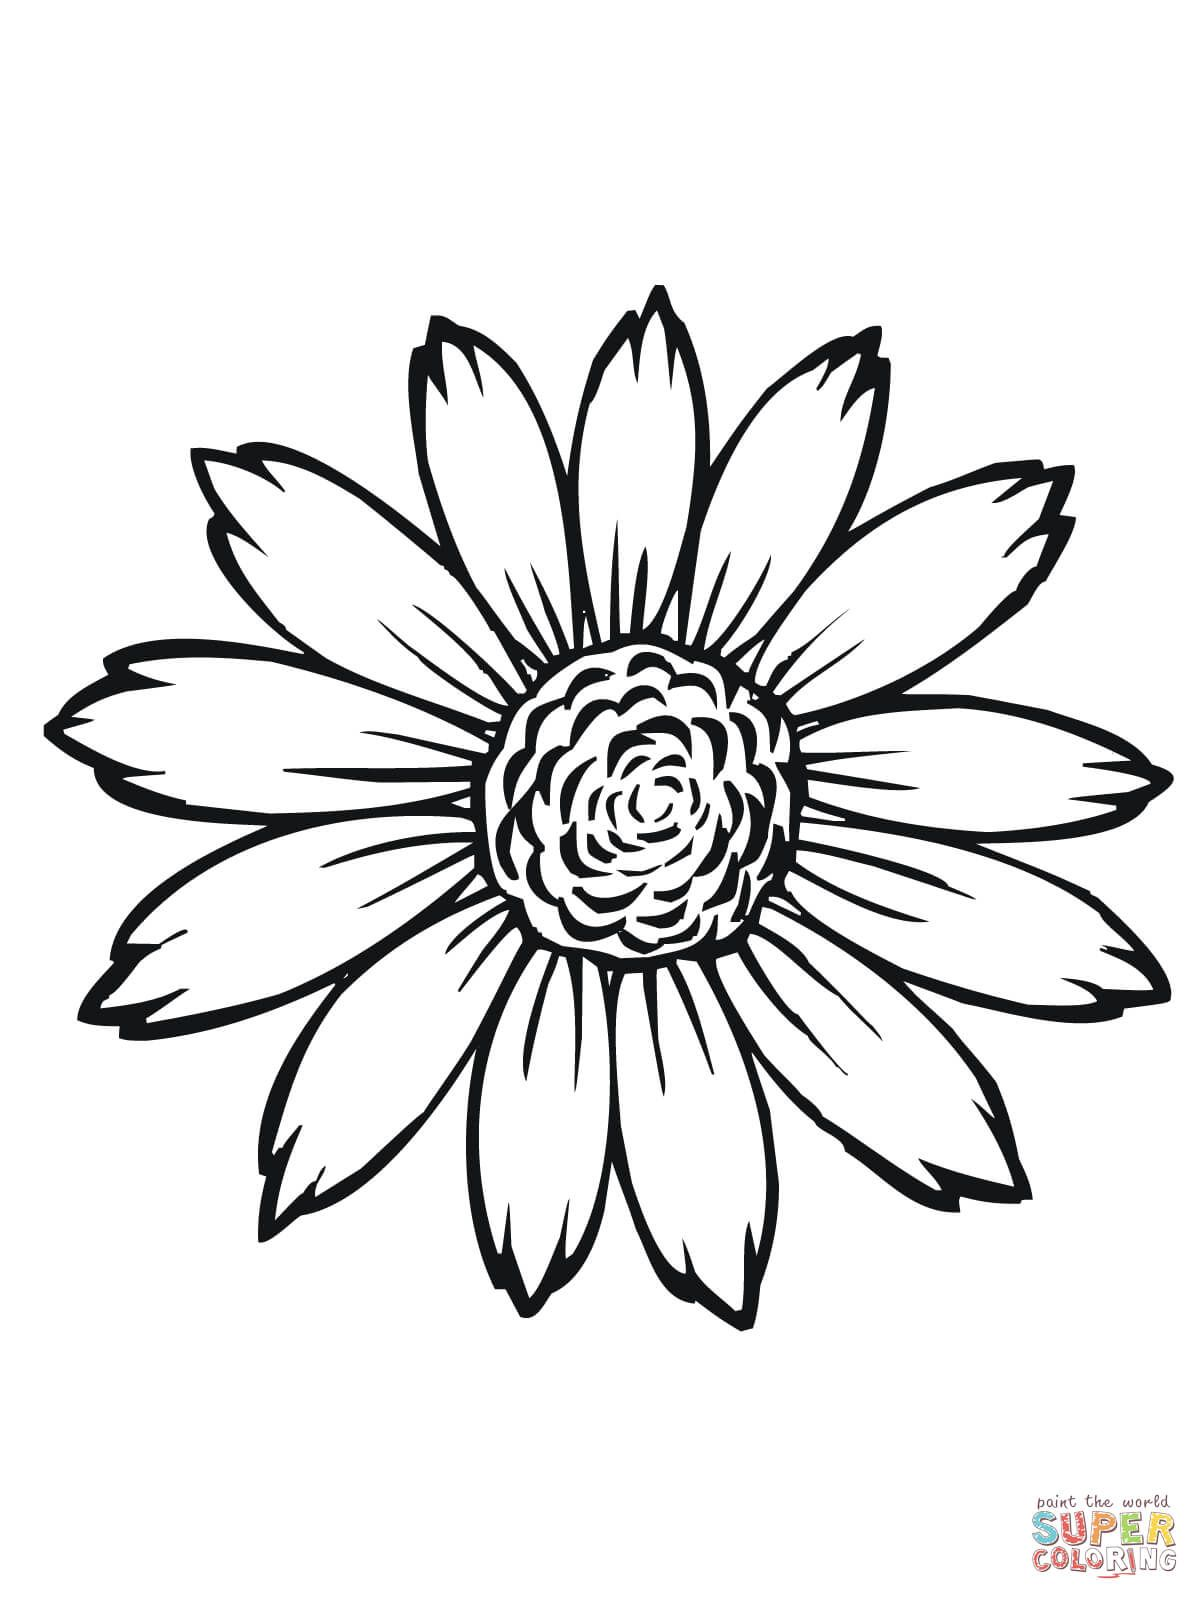 1200x1600 Sunflower Flower Coloring Pages Printable Wedding Stuff